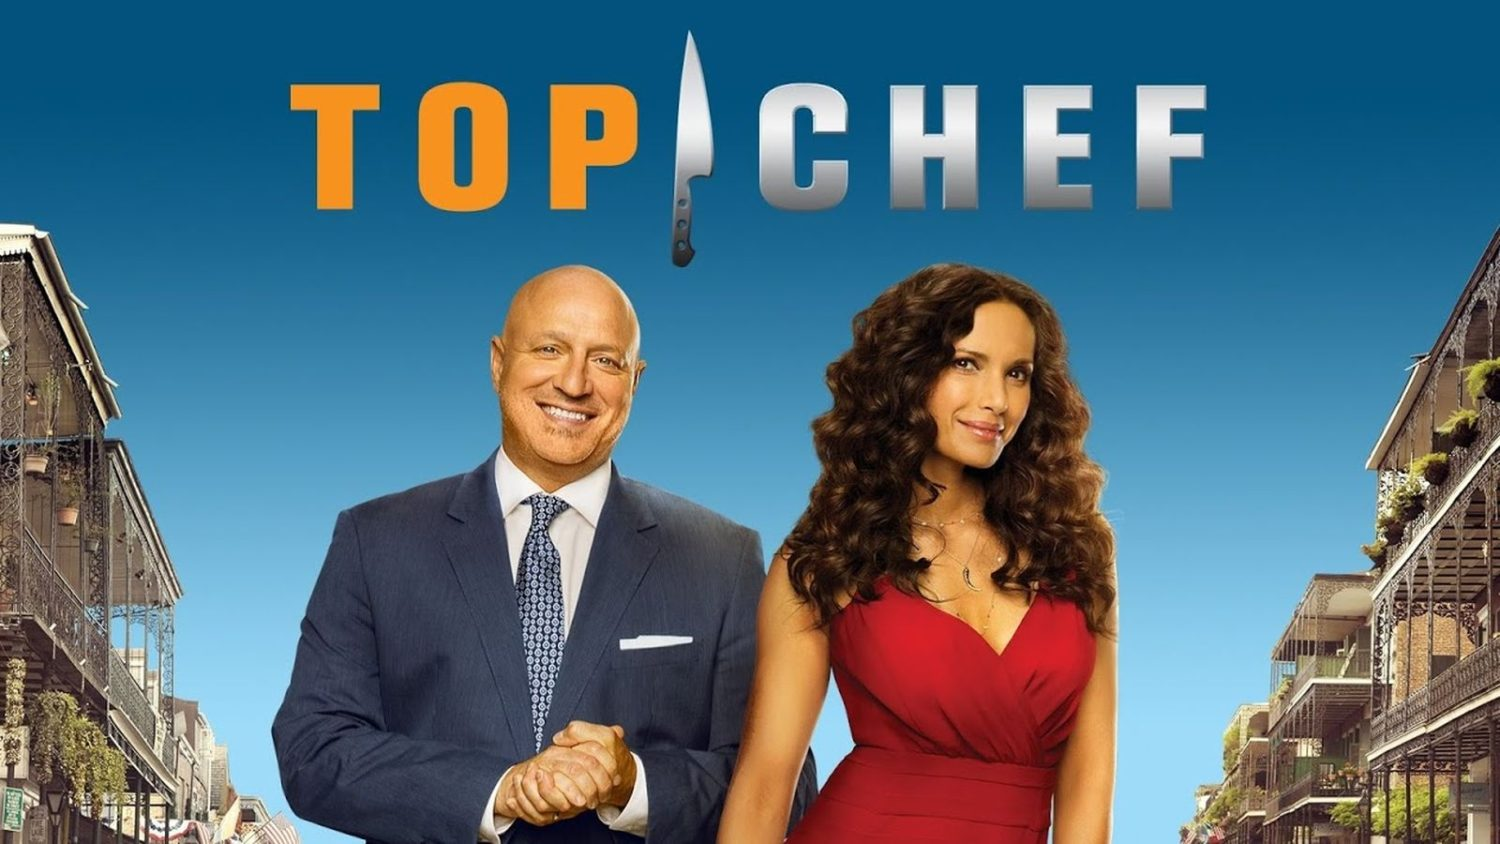 Top Chef -- No idea what they do. But I guess they tell you about running restaurant business? May be.